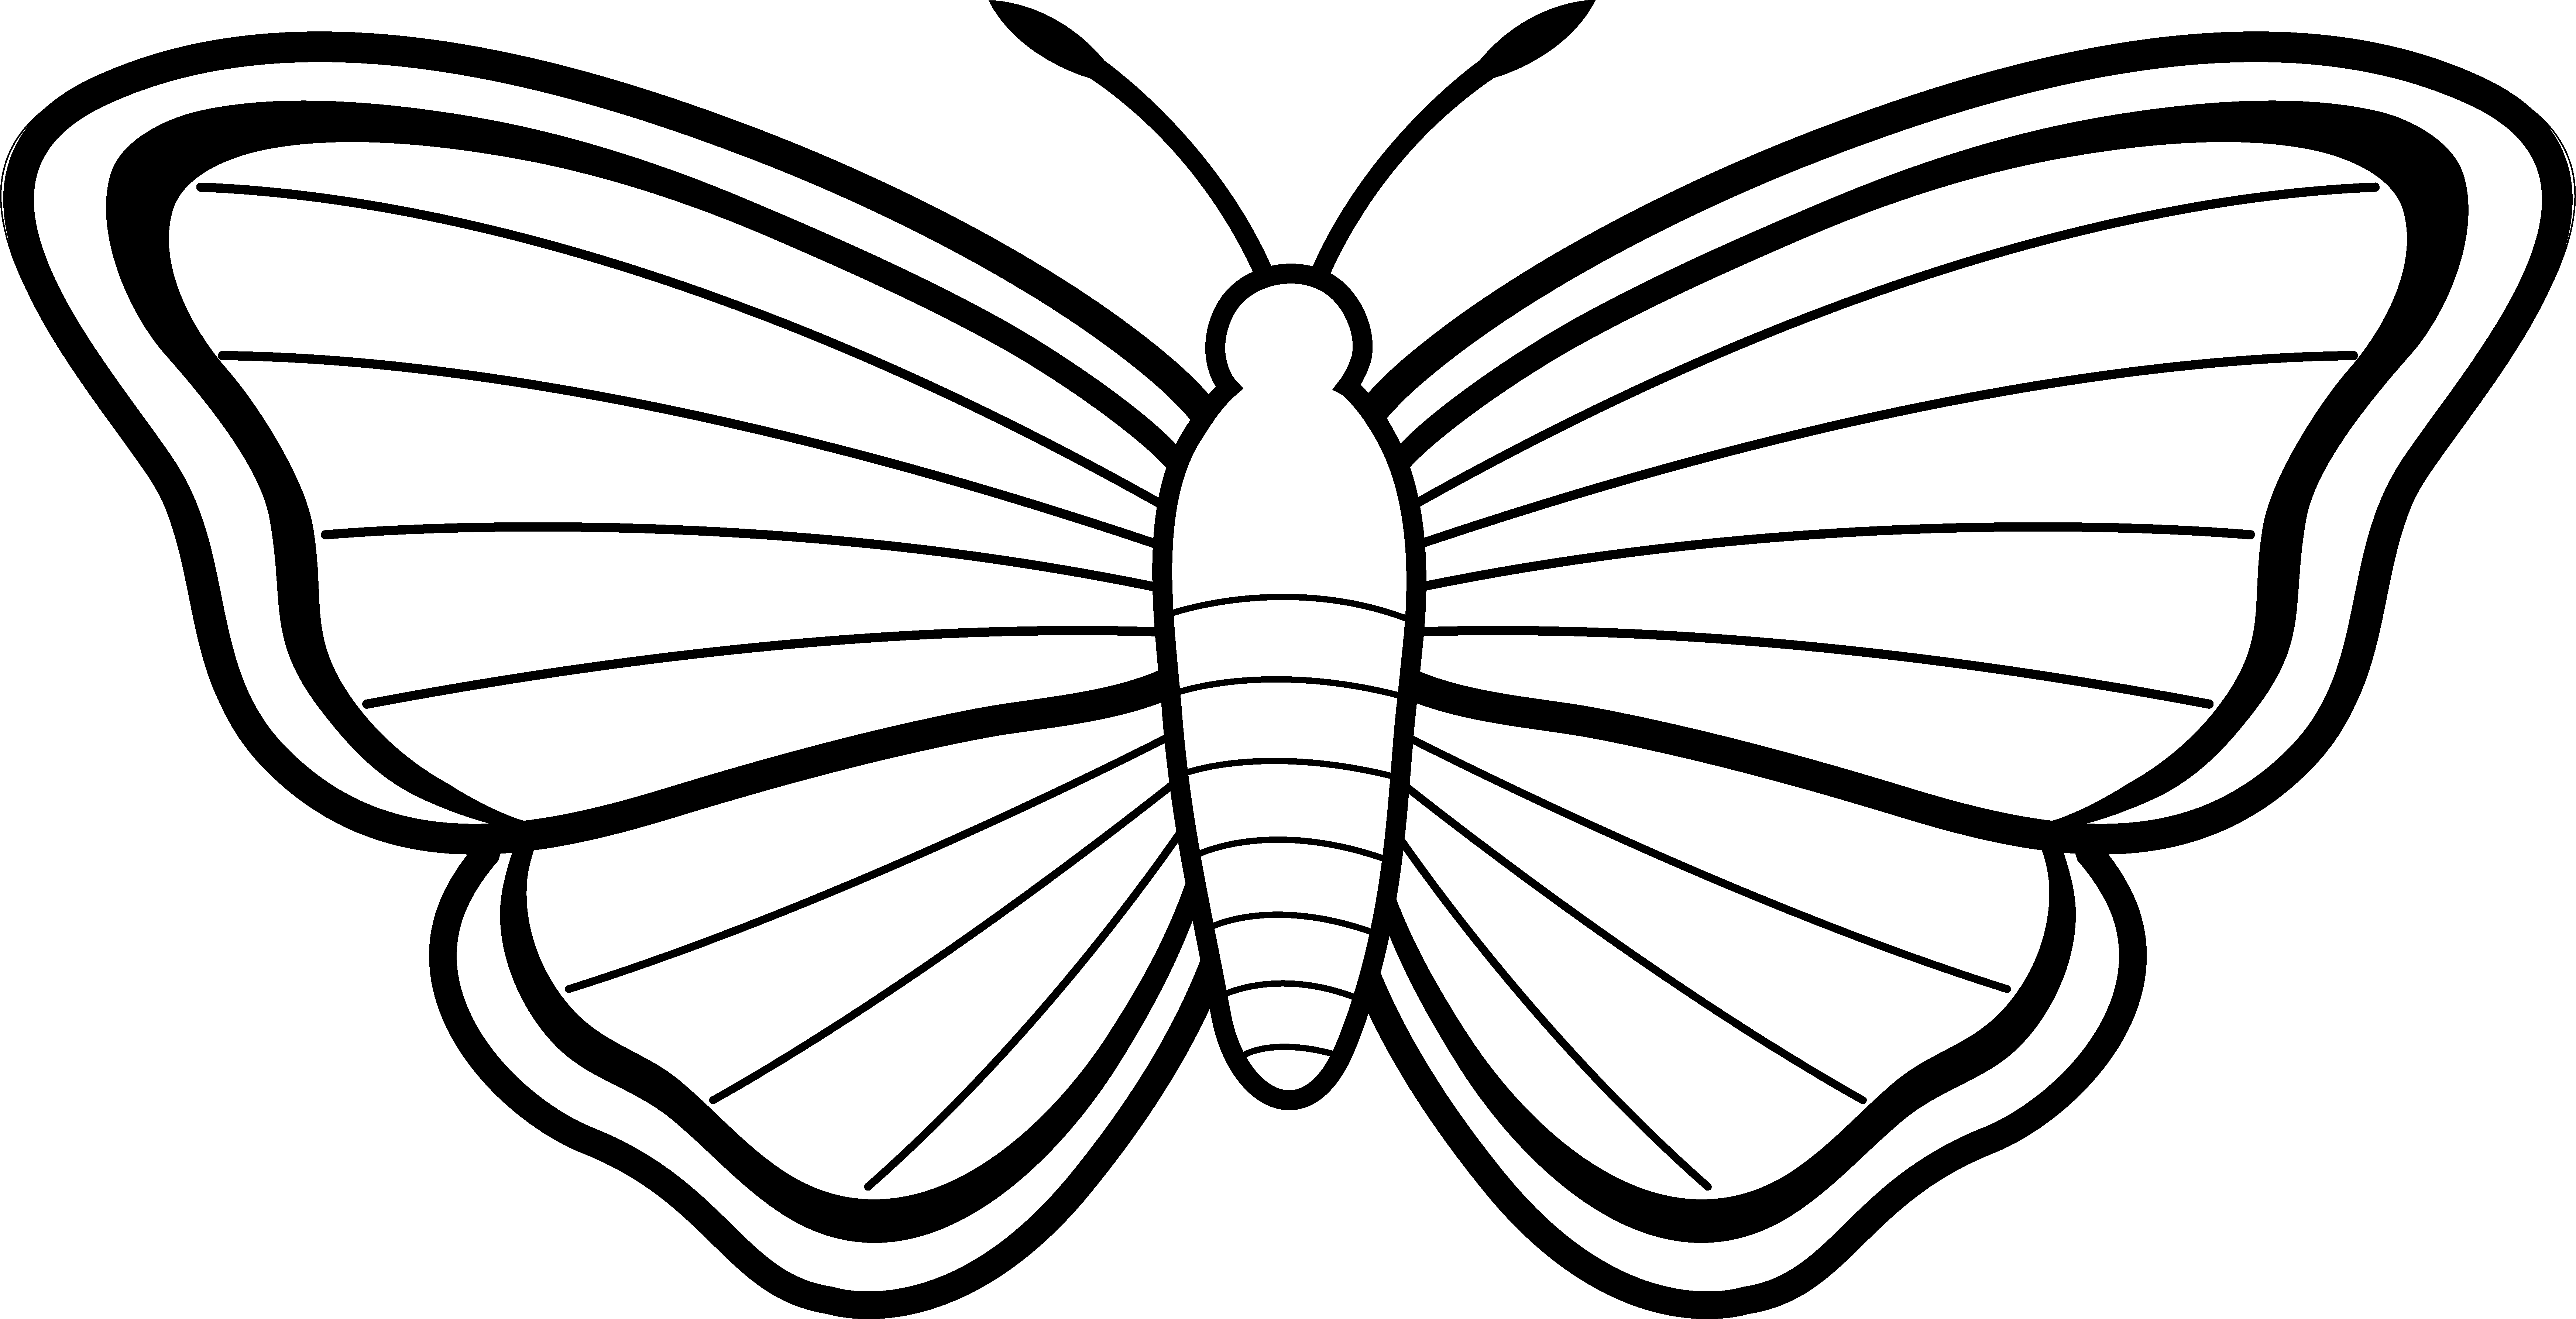 Butterfly outline. Clipart panda free images